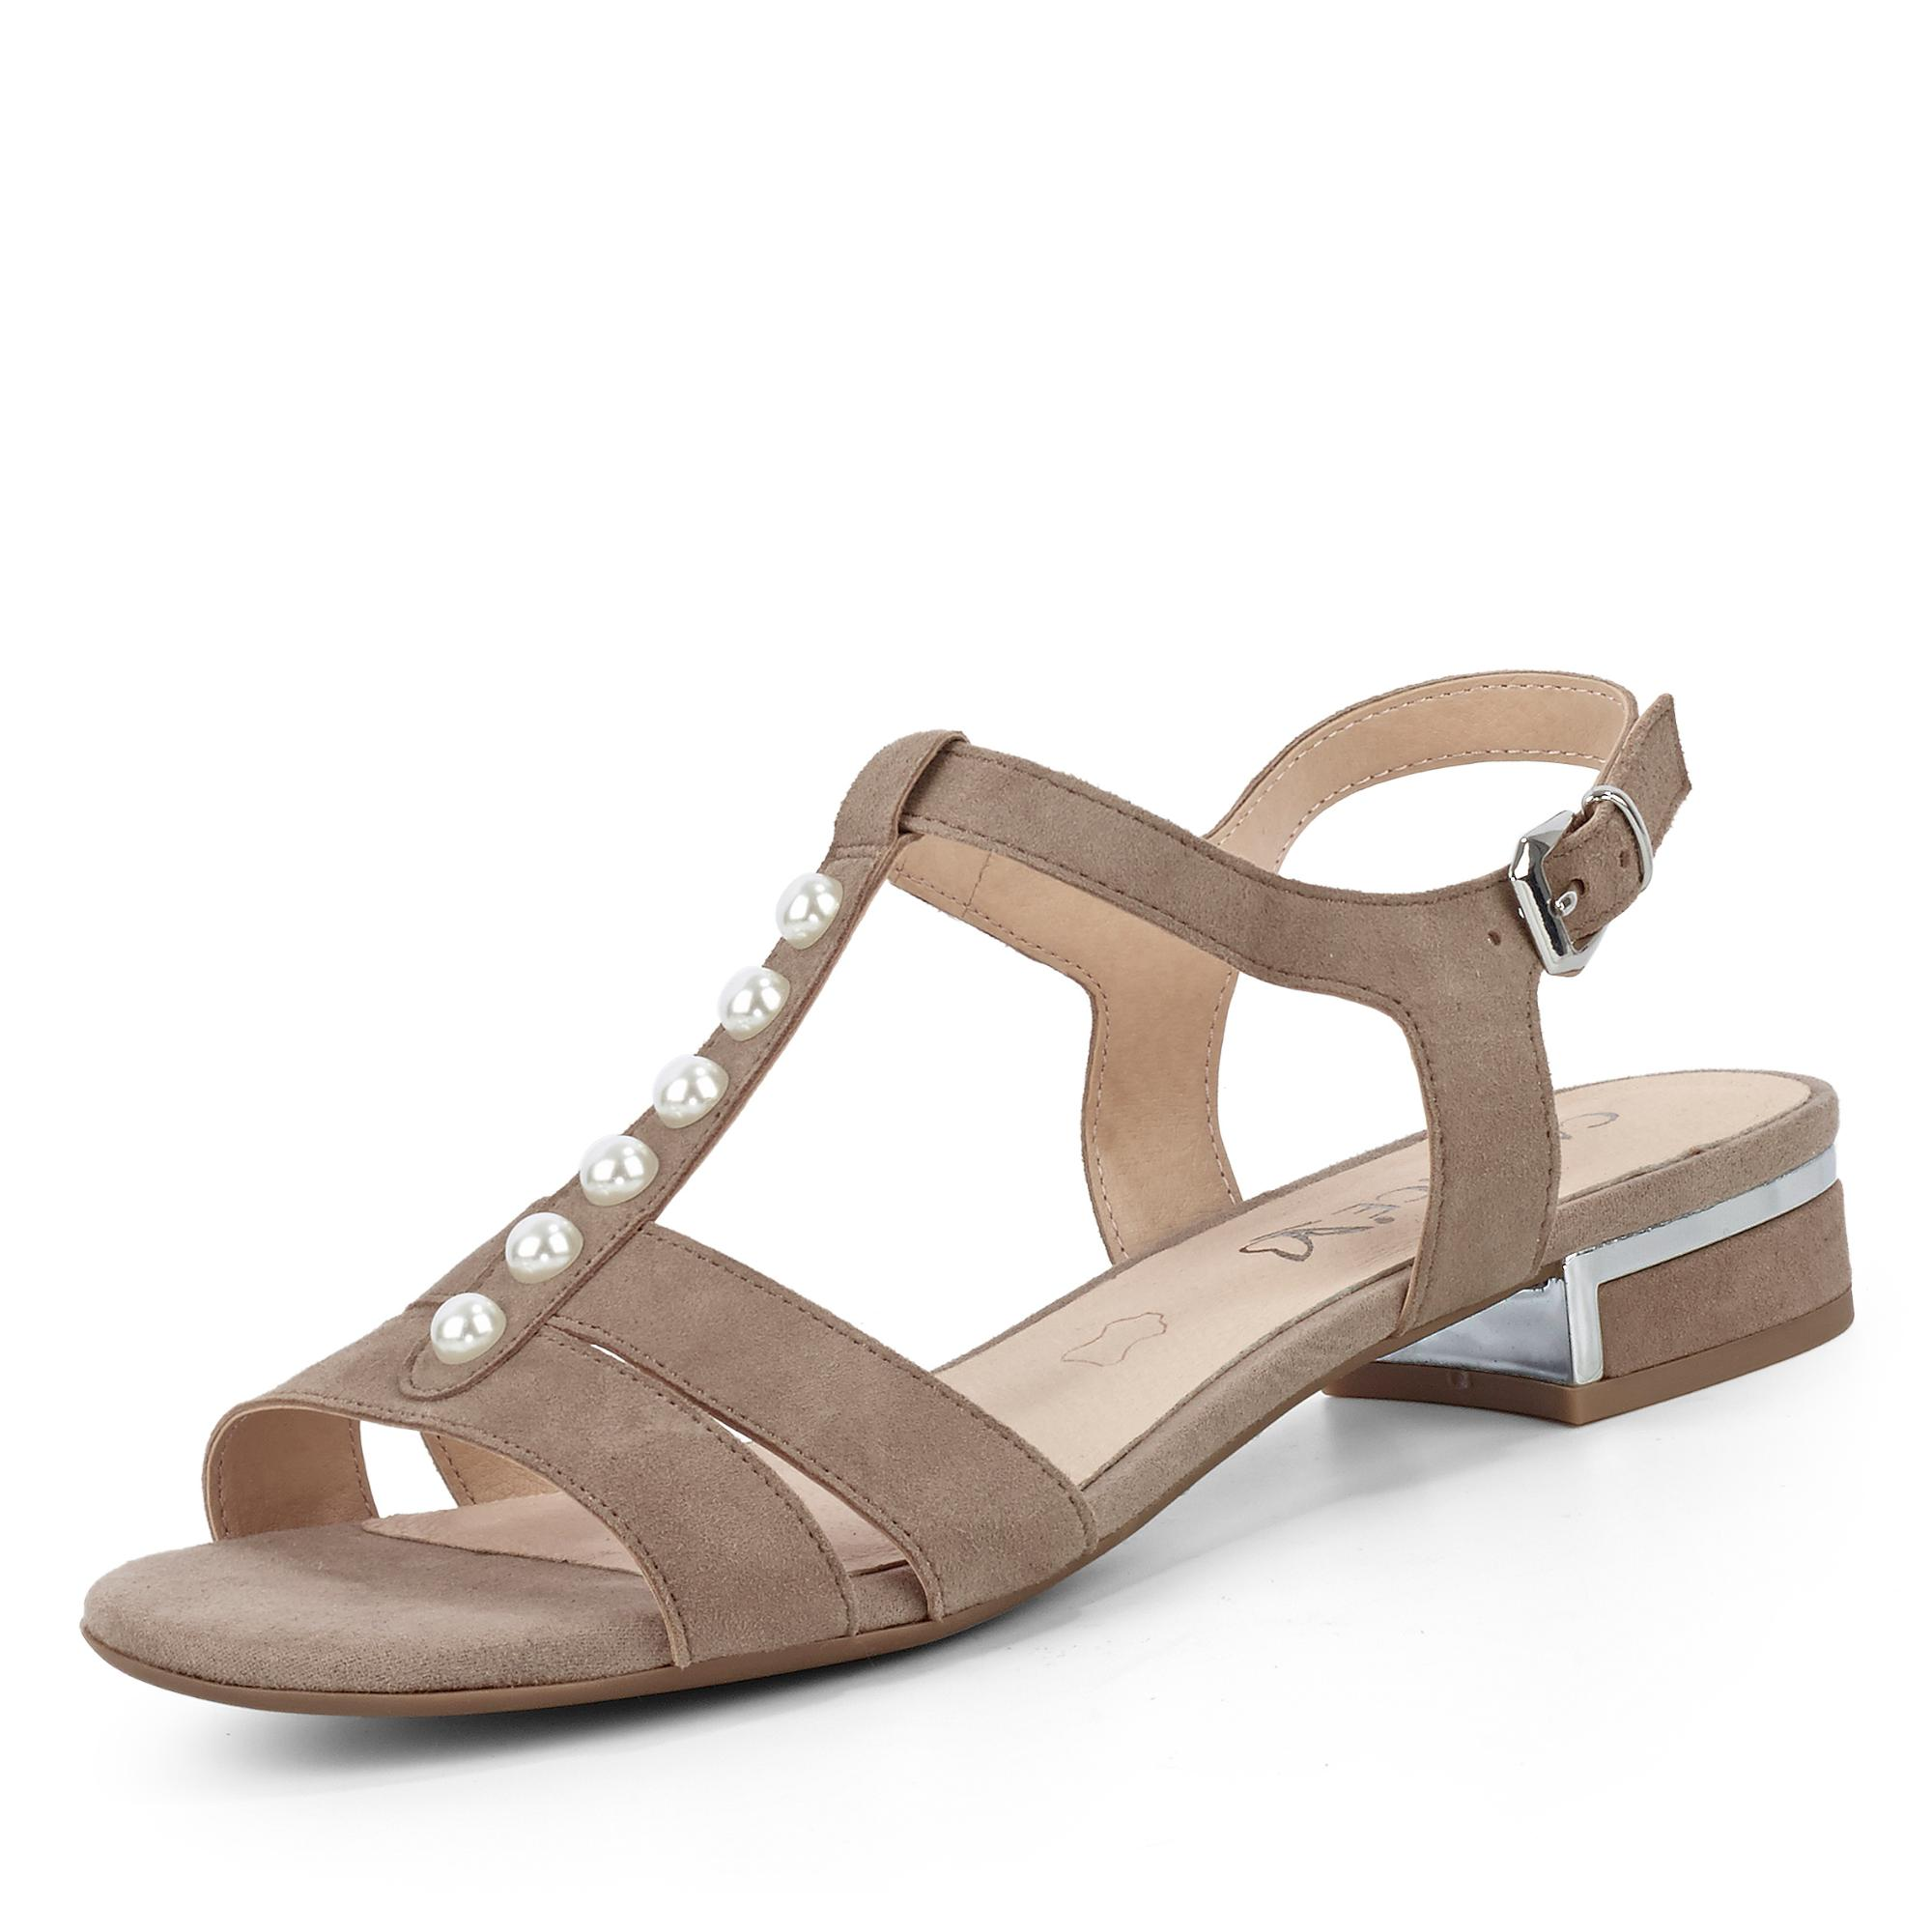 Caprice Sandale - taupe online kaufen